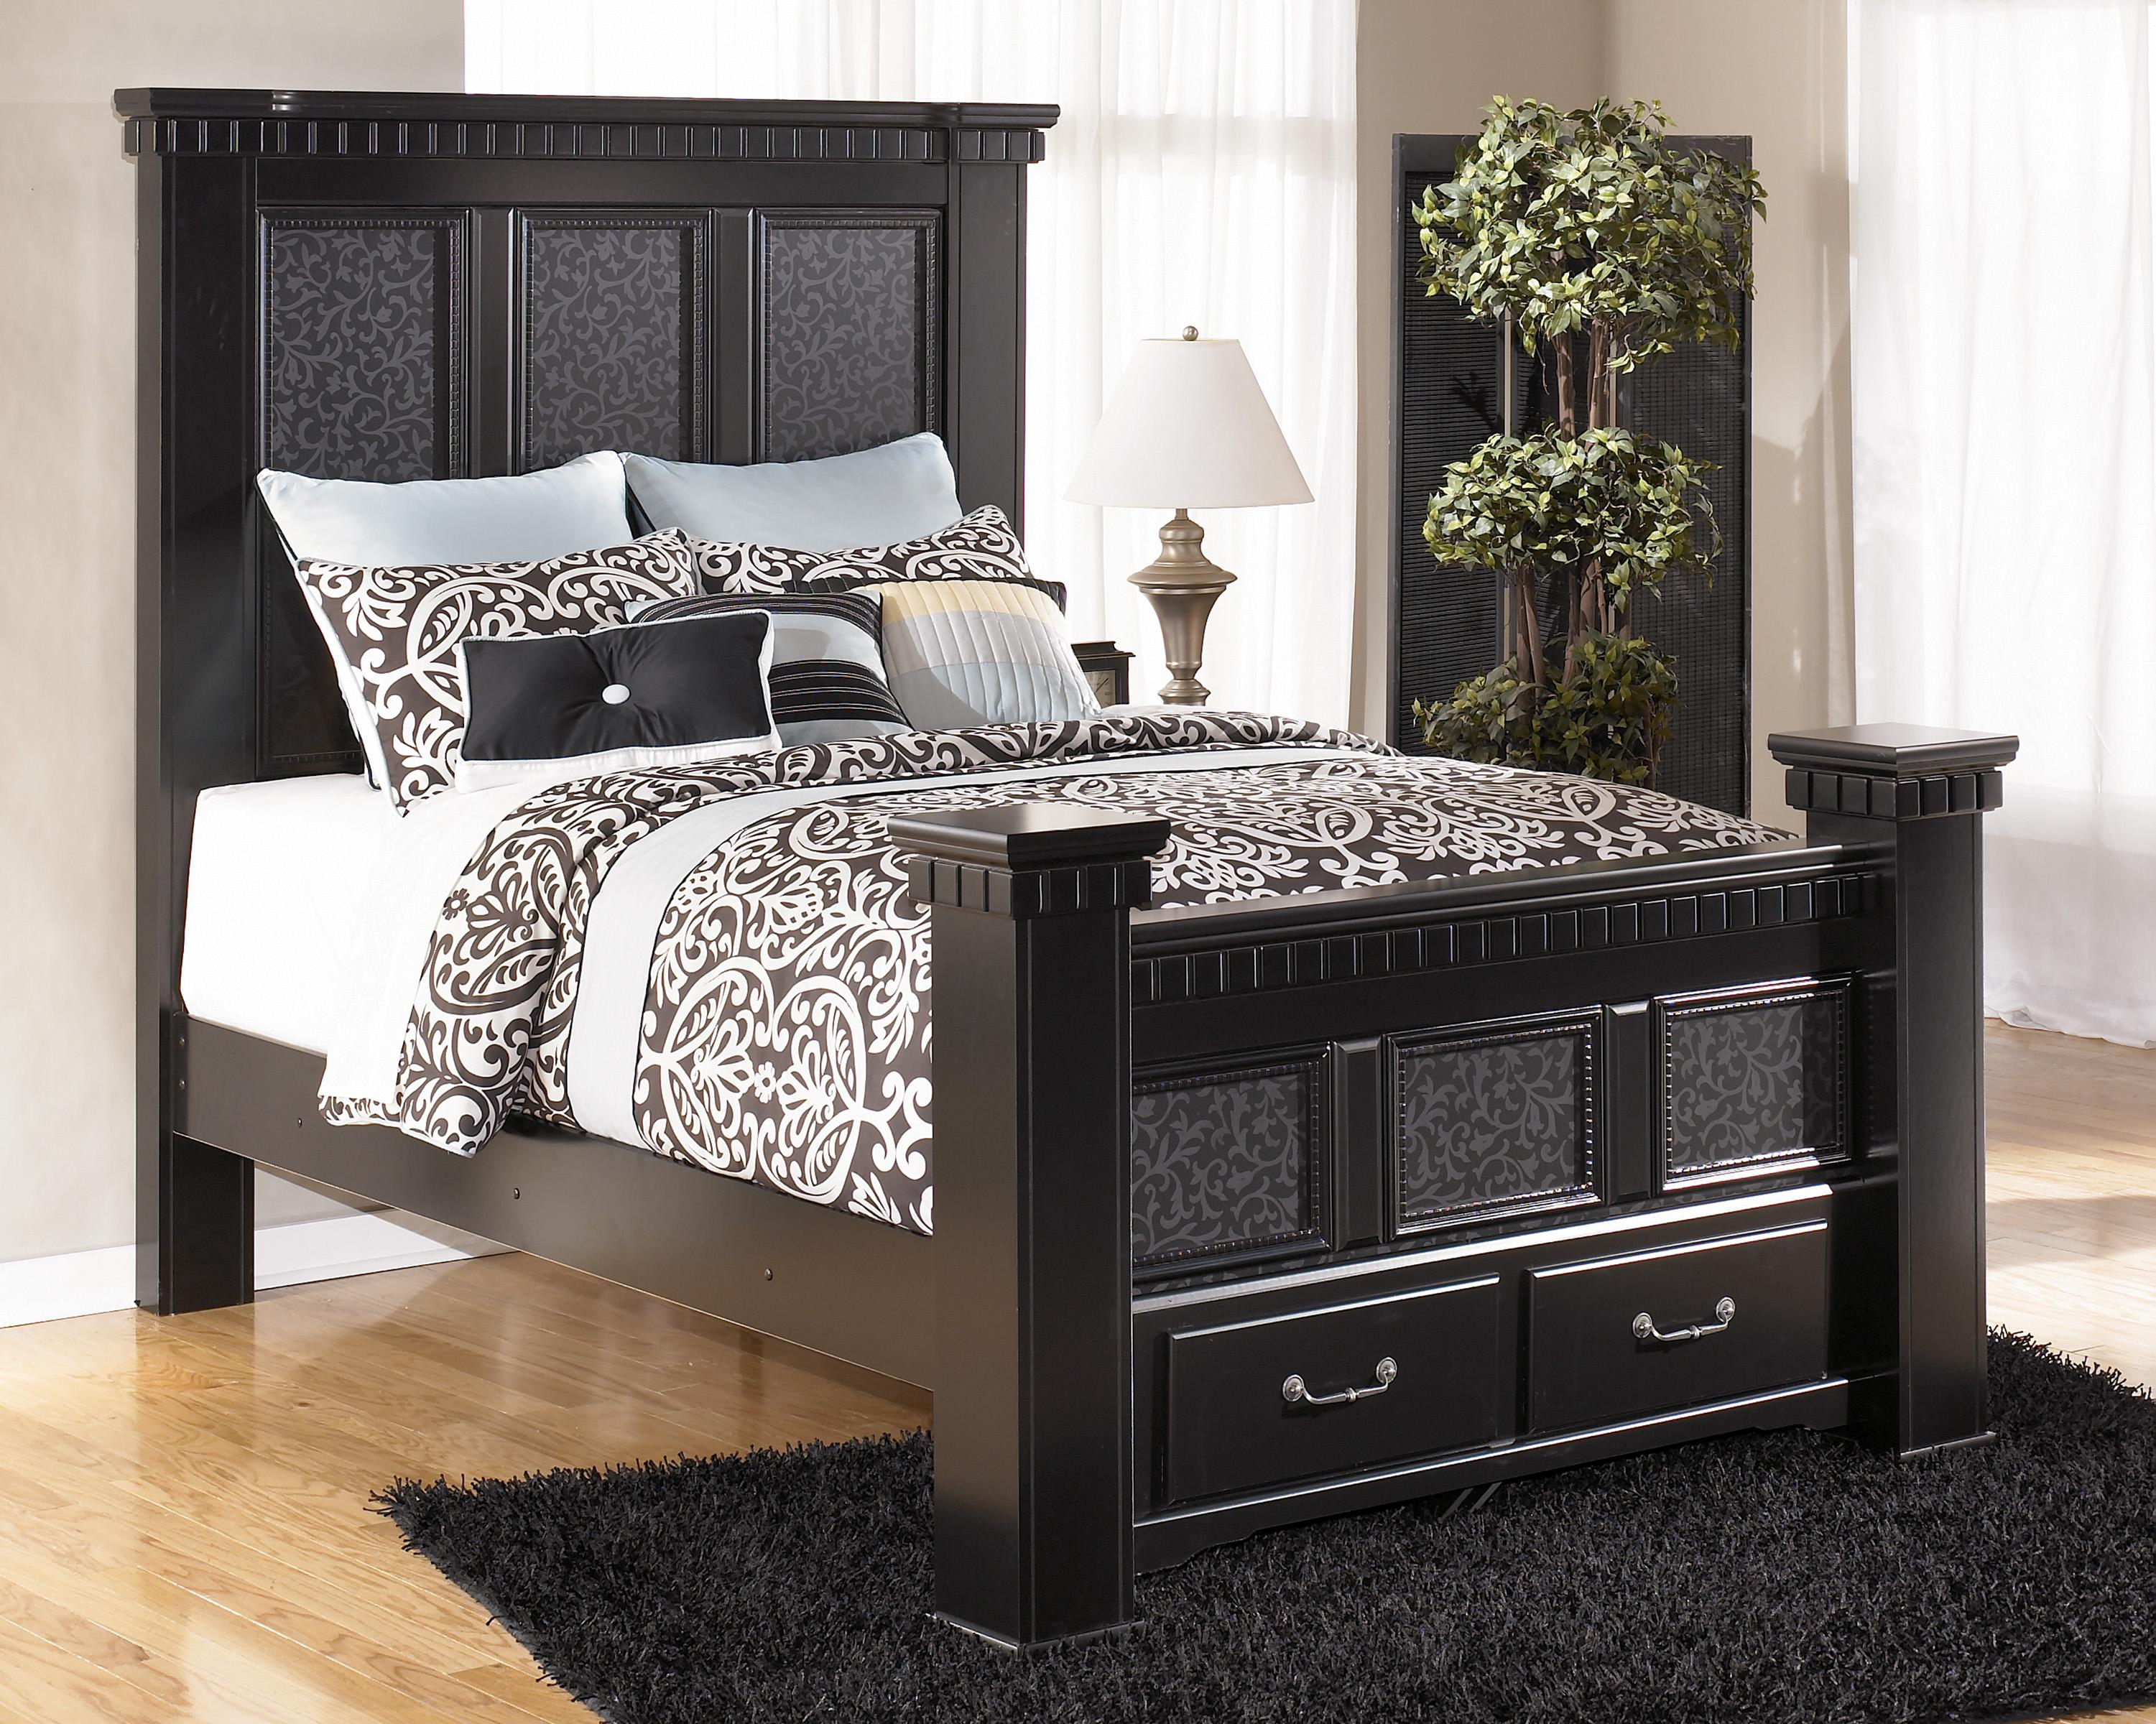 Signature Design By Ashley Furniture Cavallino Queen